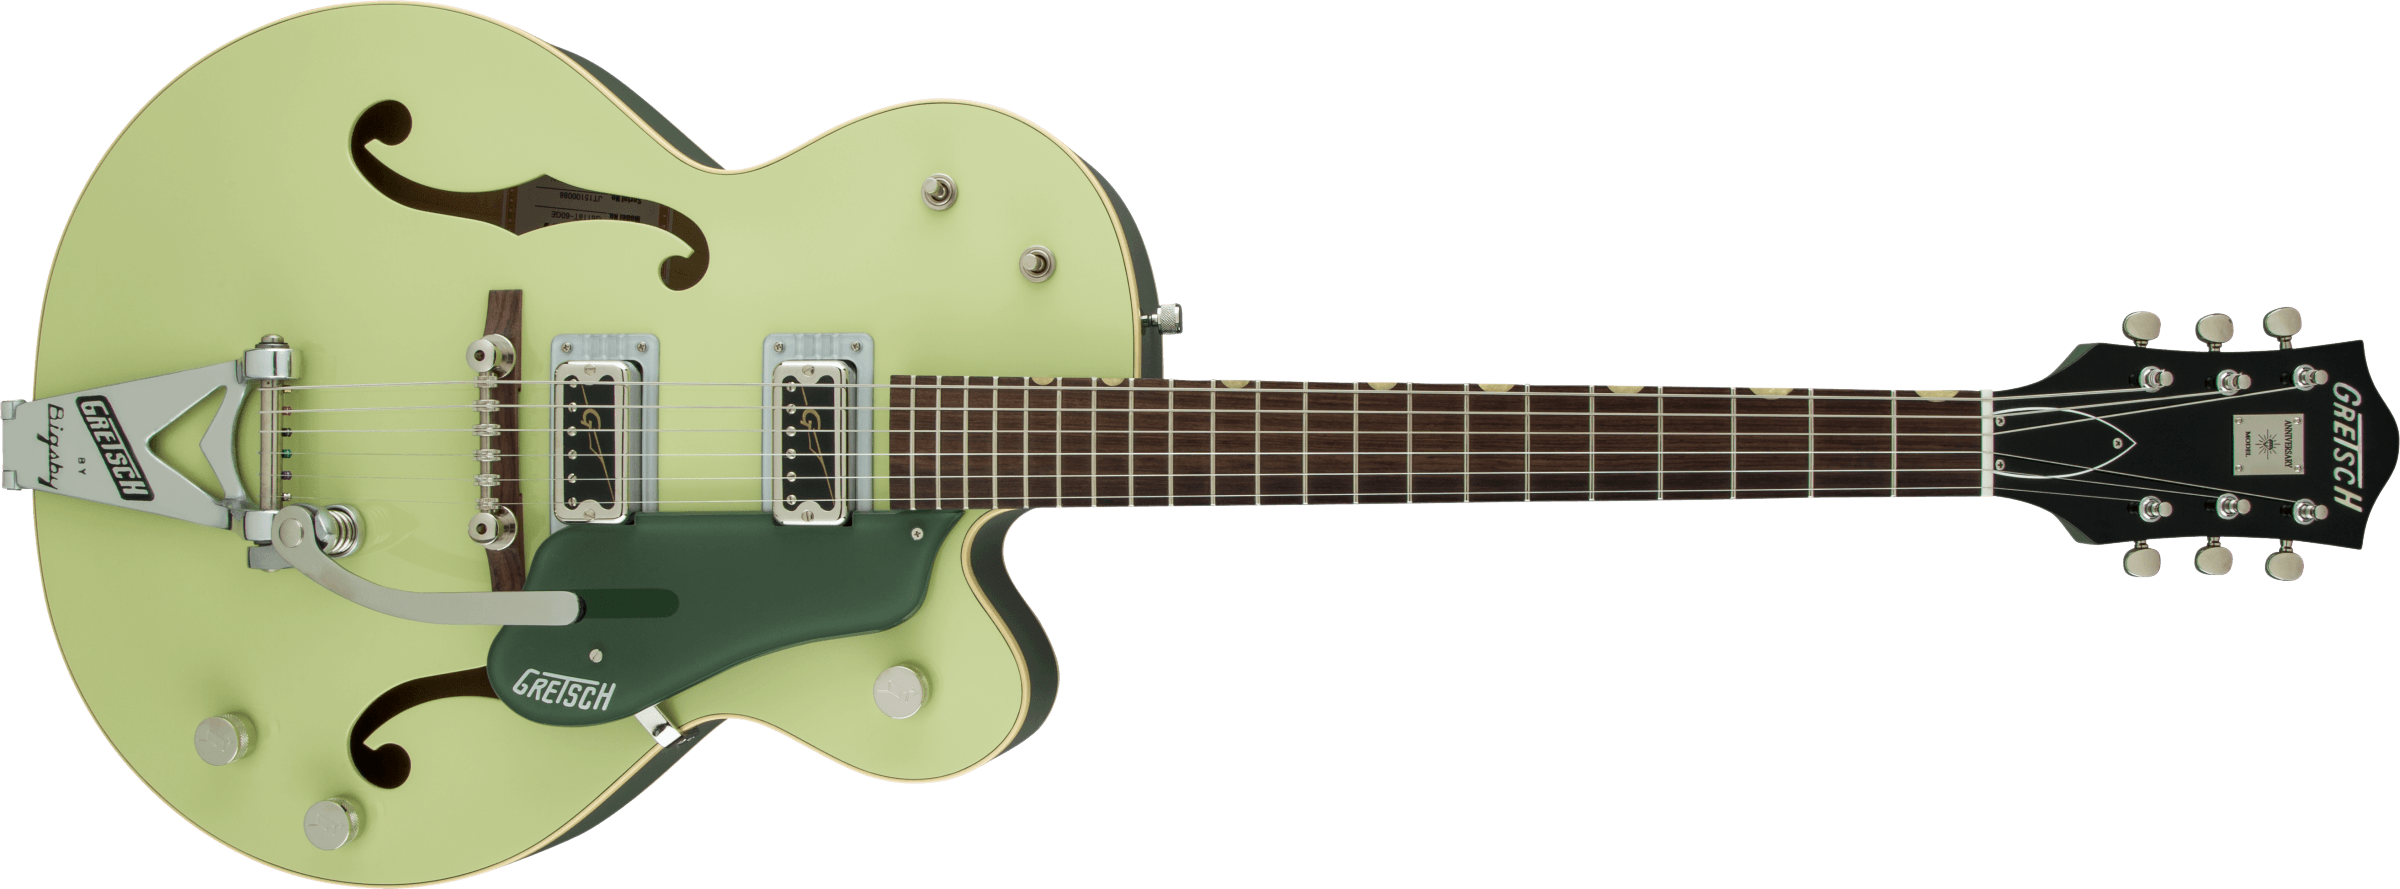 GRETSCH-G6118T-60-Vintage-Select-Edition-60-Anniversary-Hollow-Body-with-Bigsby-TV-Jones-2-Tone-Smoke-Green-sku-571000154